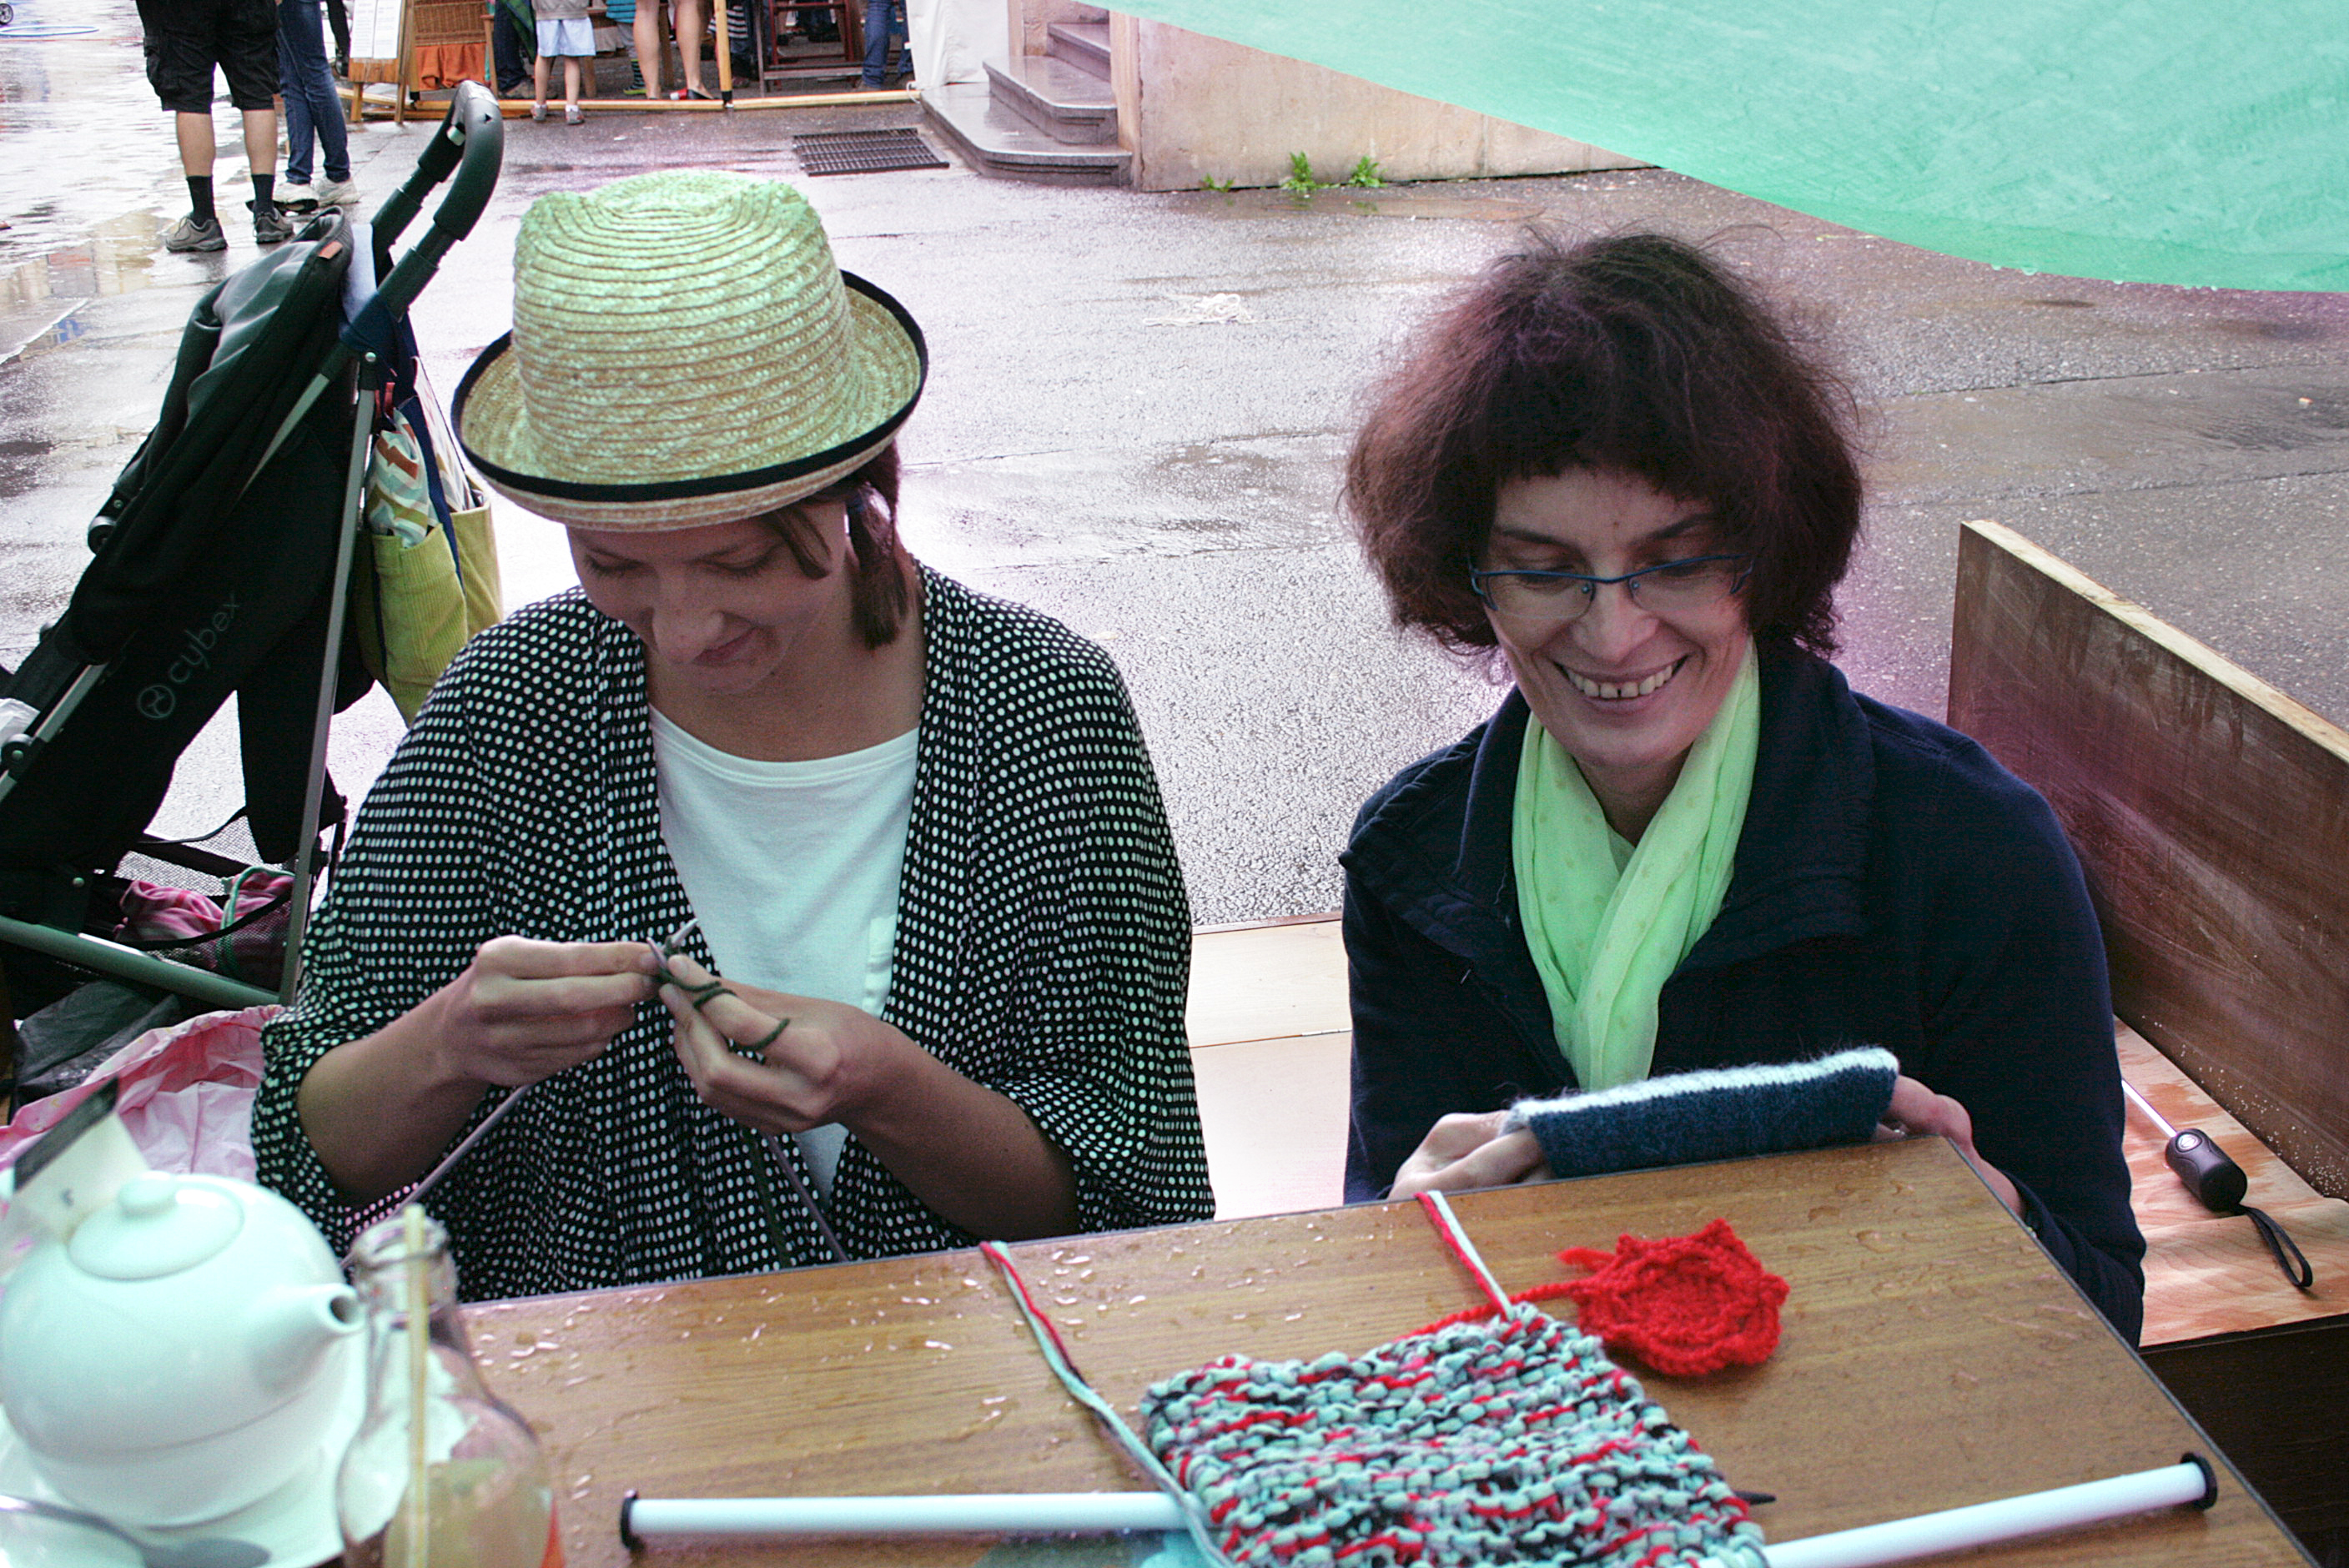 knitting at ZMJ14 1